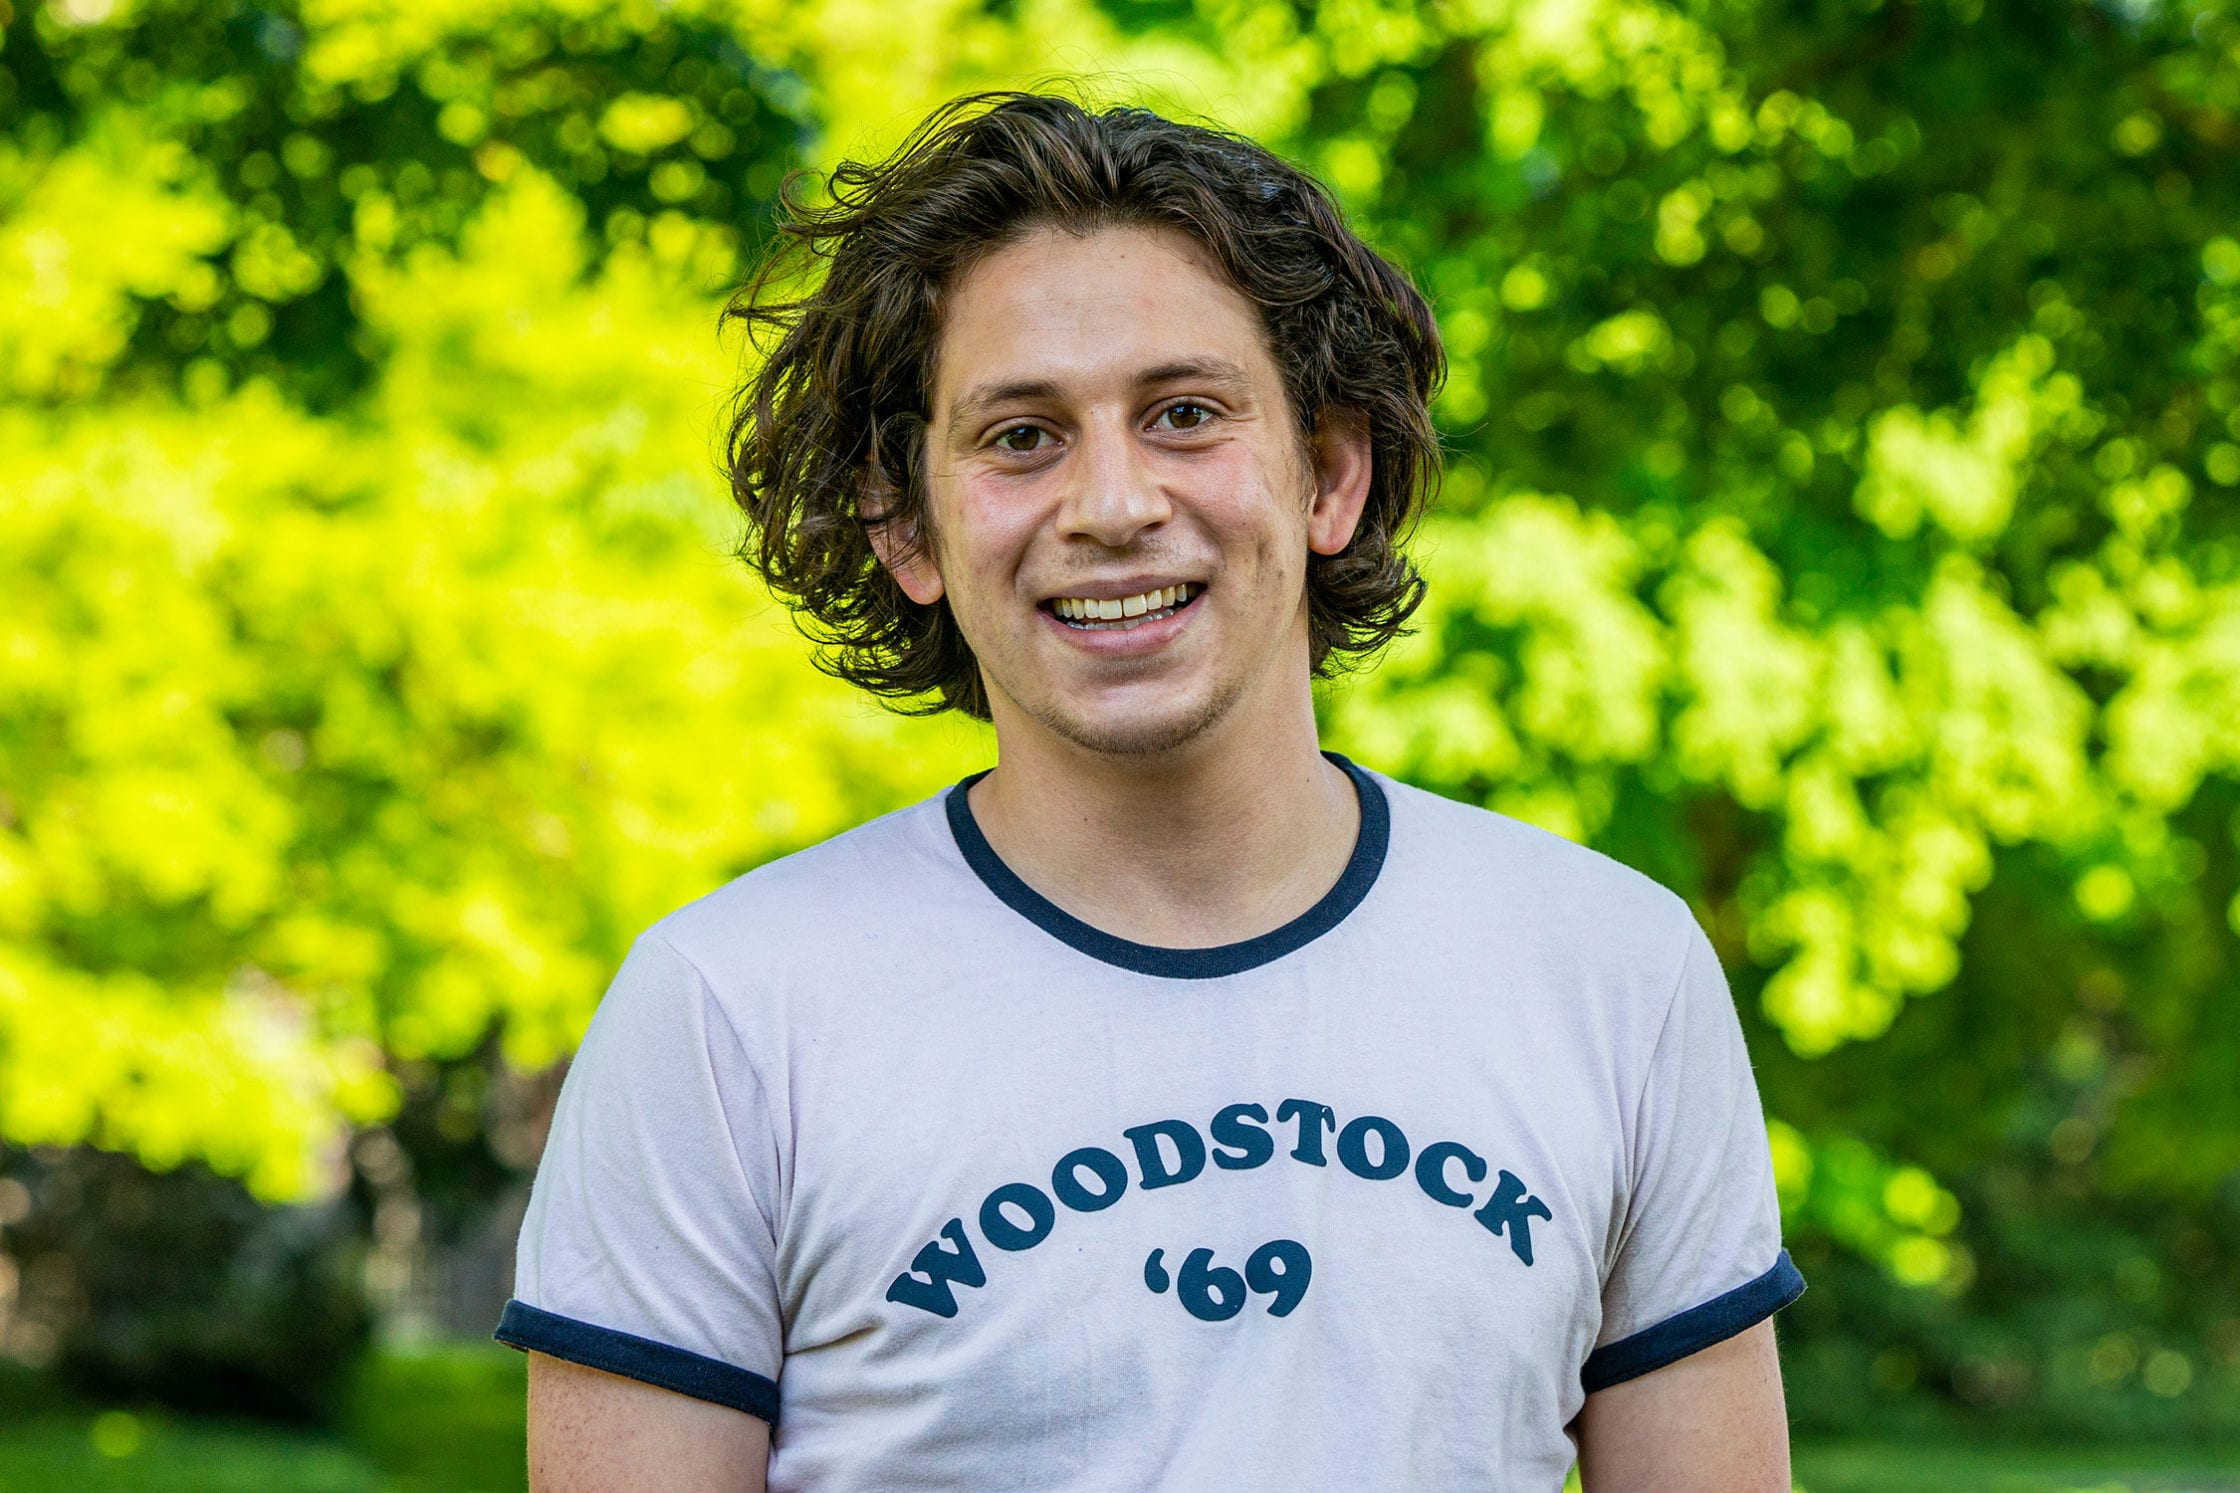 """Headshot of Federico wearing white shirt with """"Woodstock '69"""" in blue writing on it."""